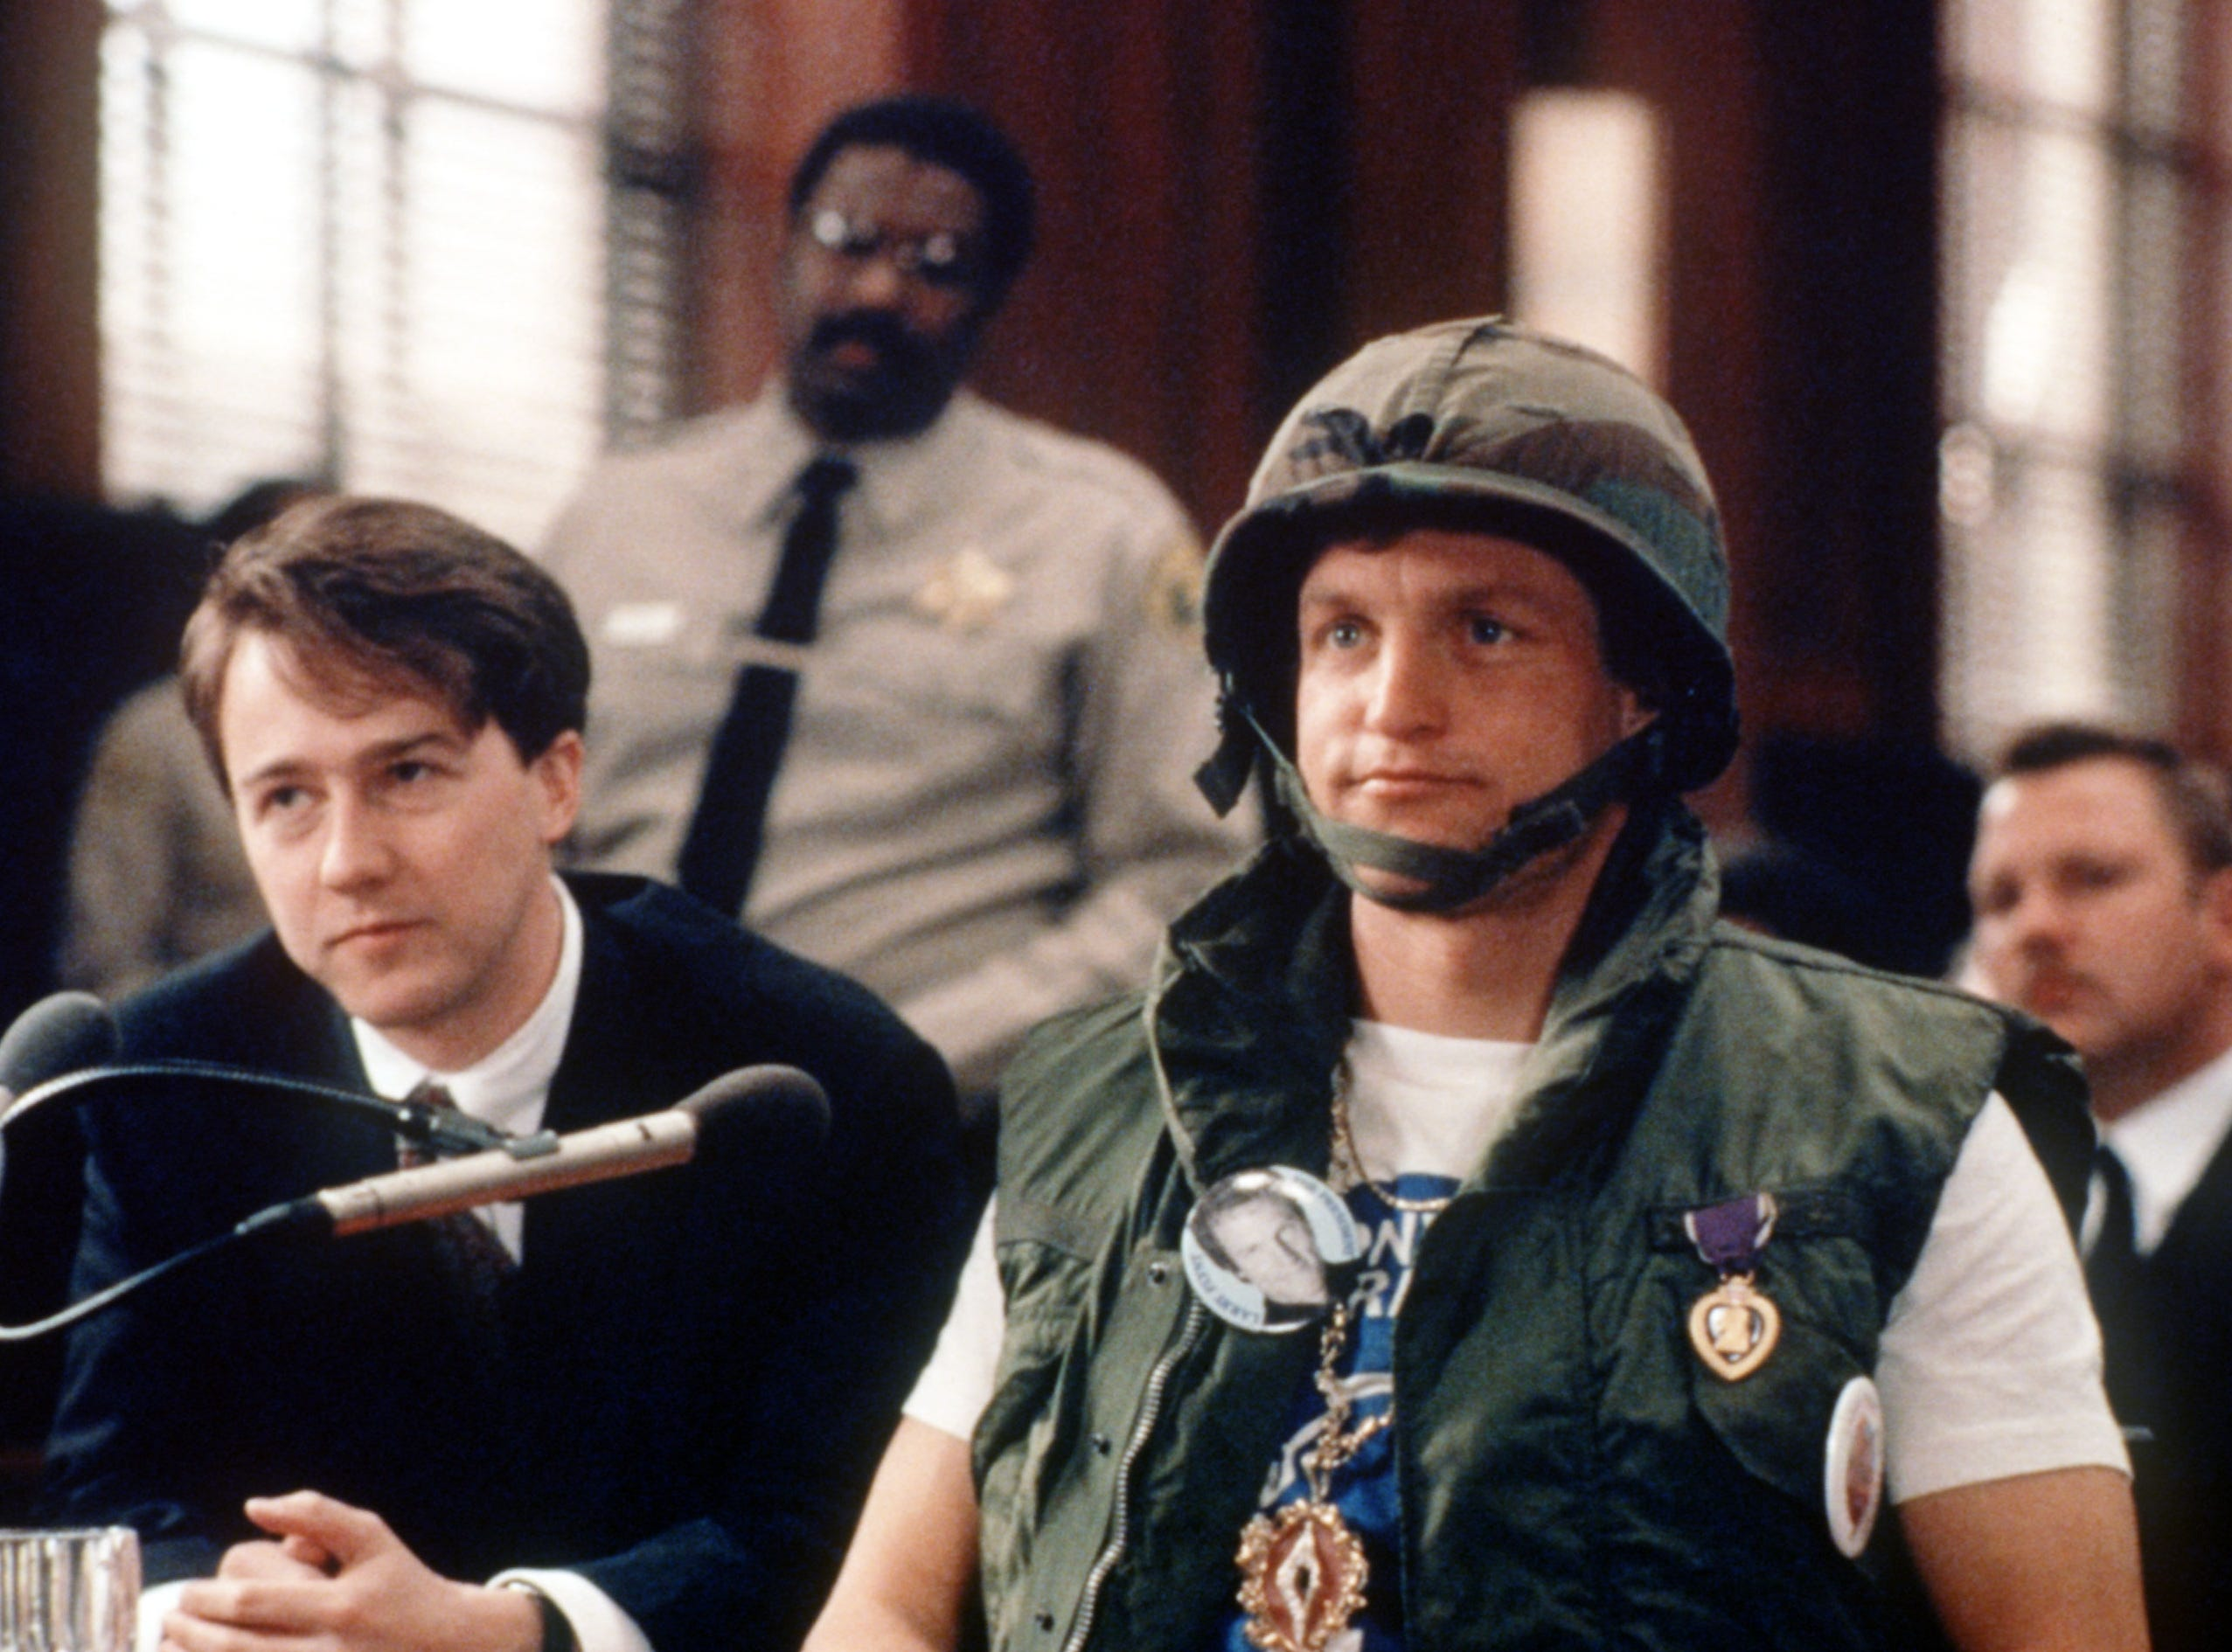 """DATE TAKEN: 1996--- Edward Norton, left, and Woody Harrelson in """"The People Vs. Larry Flynt."""" ORG XMIT: UT36124"""